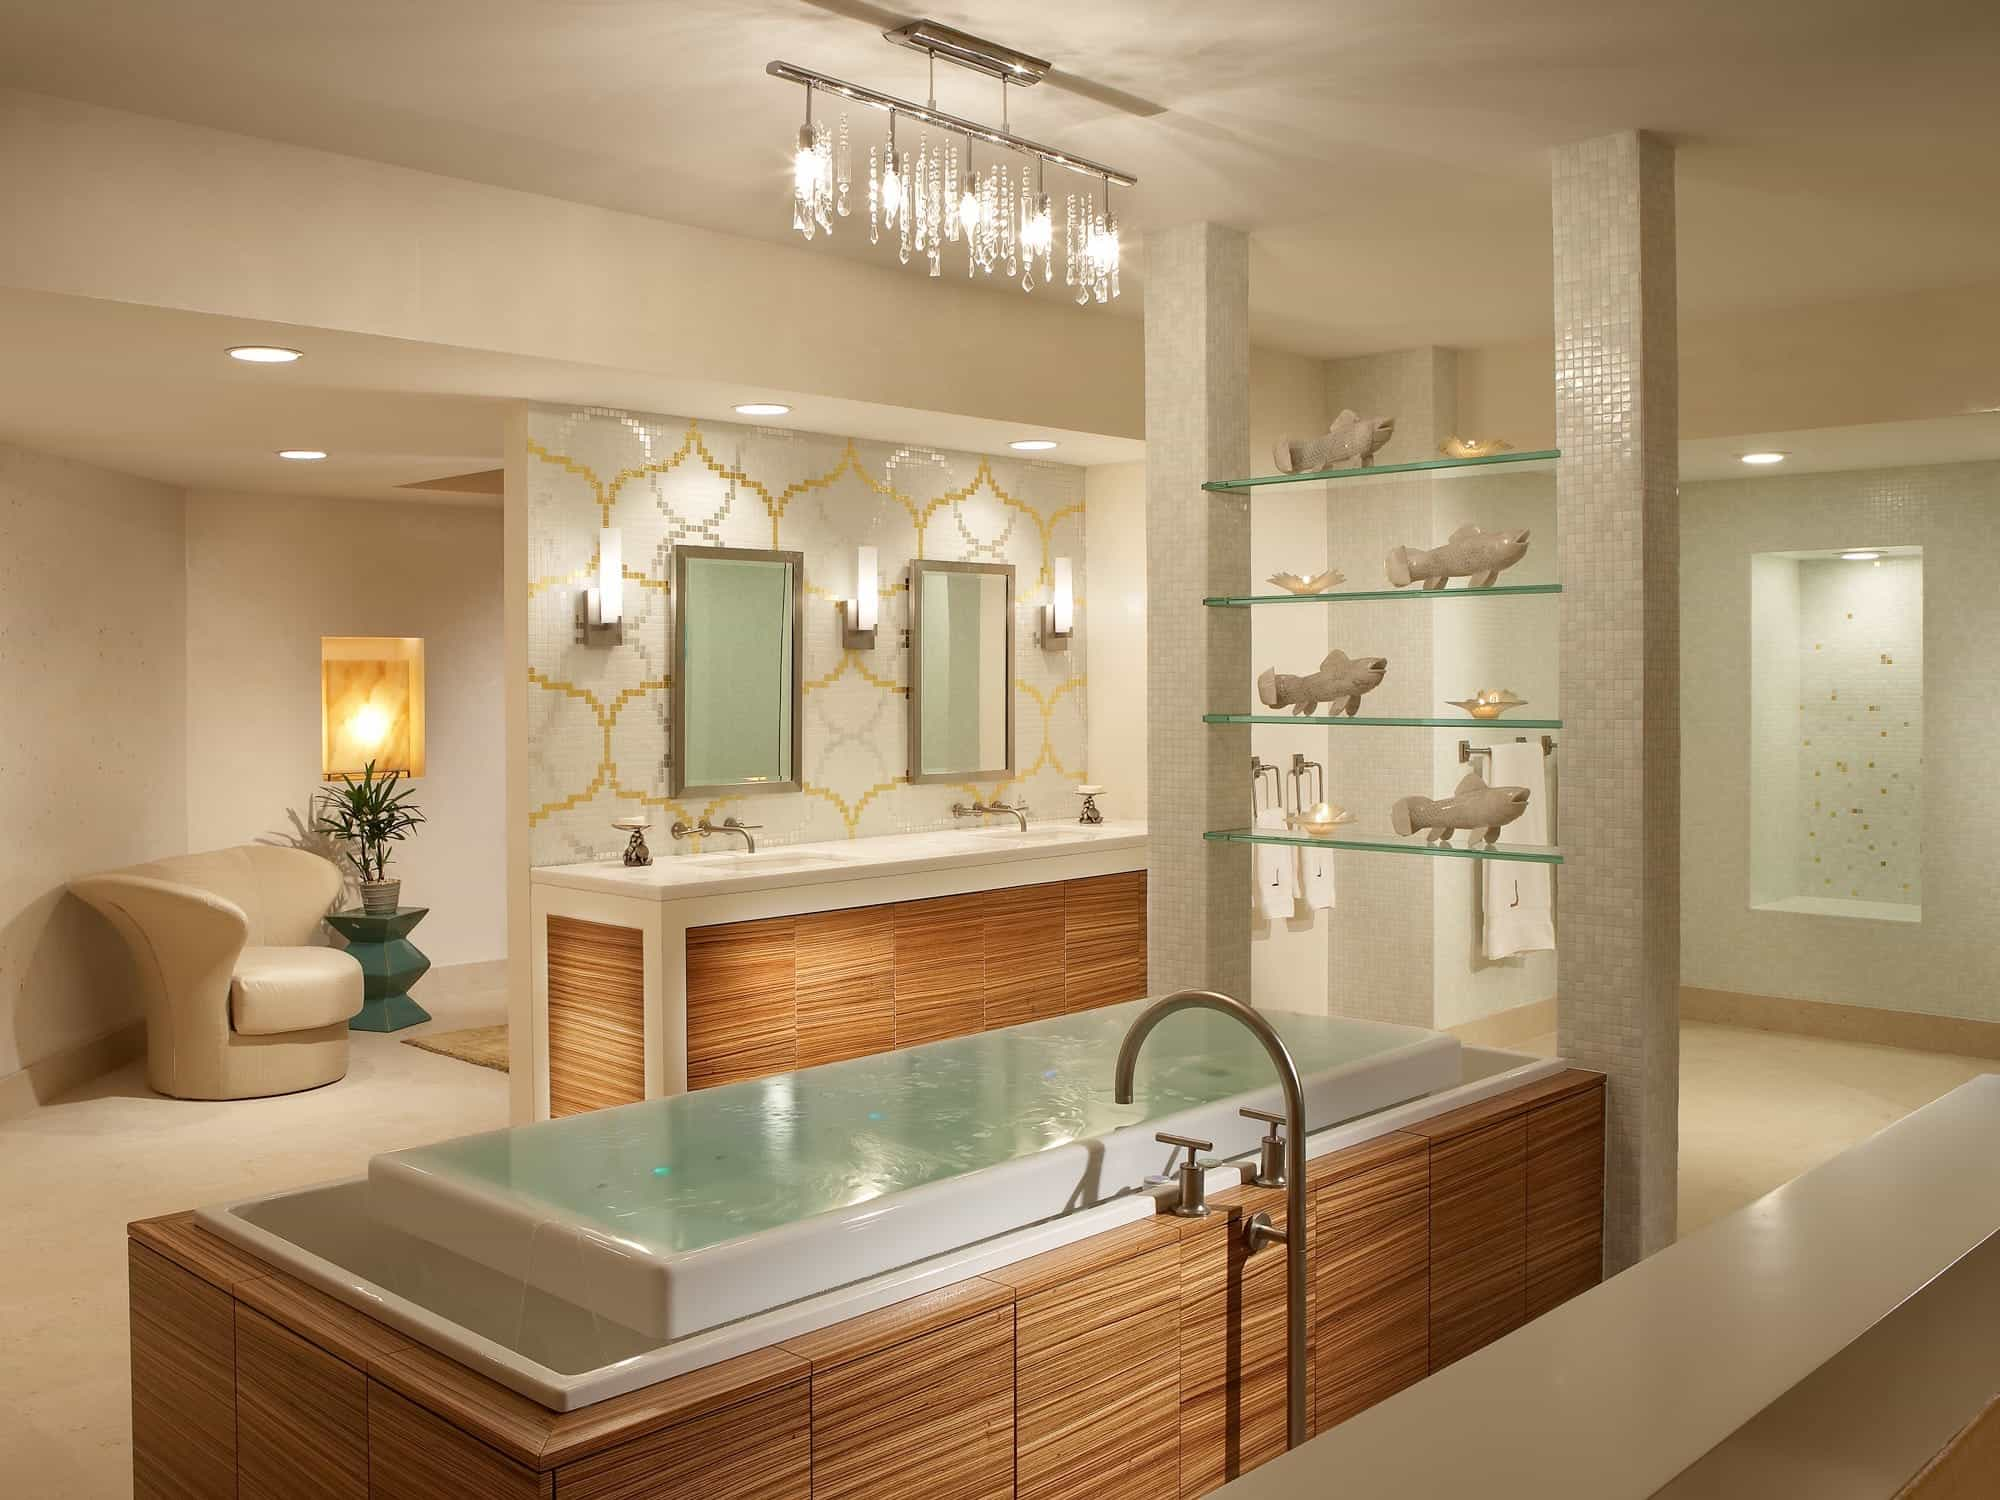 Featured Image of Contemporary Spa Like Bathroom With Glass Shelving